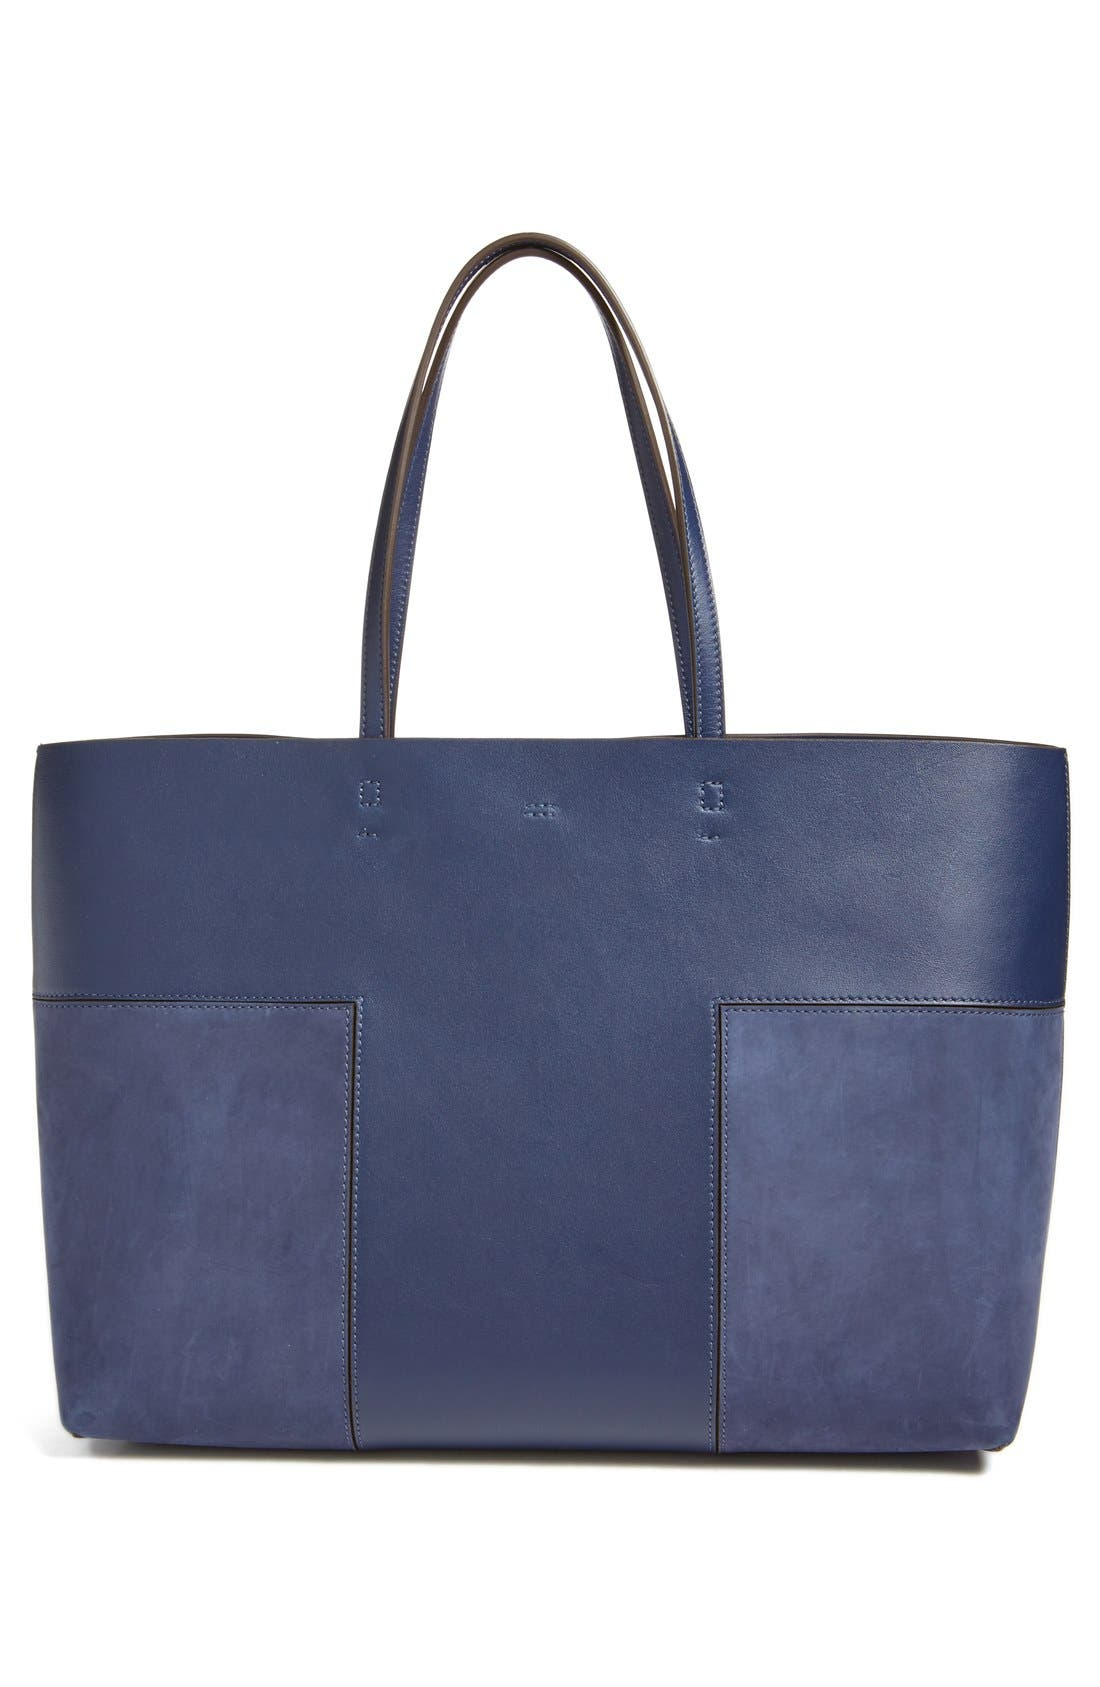 Alternate Image 2  - Tory Burch 'Block T' Leather Tote